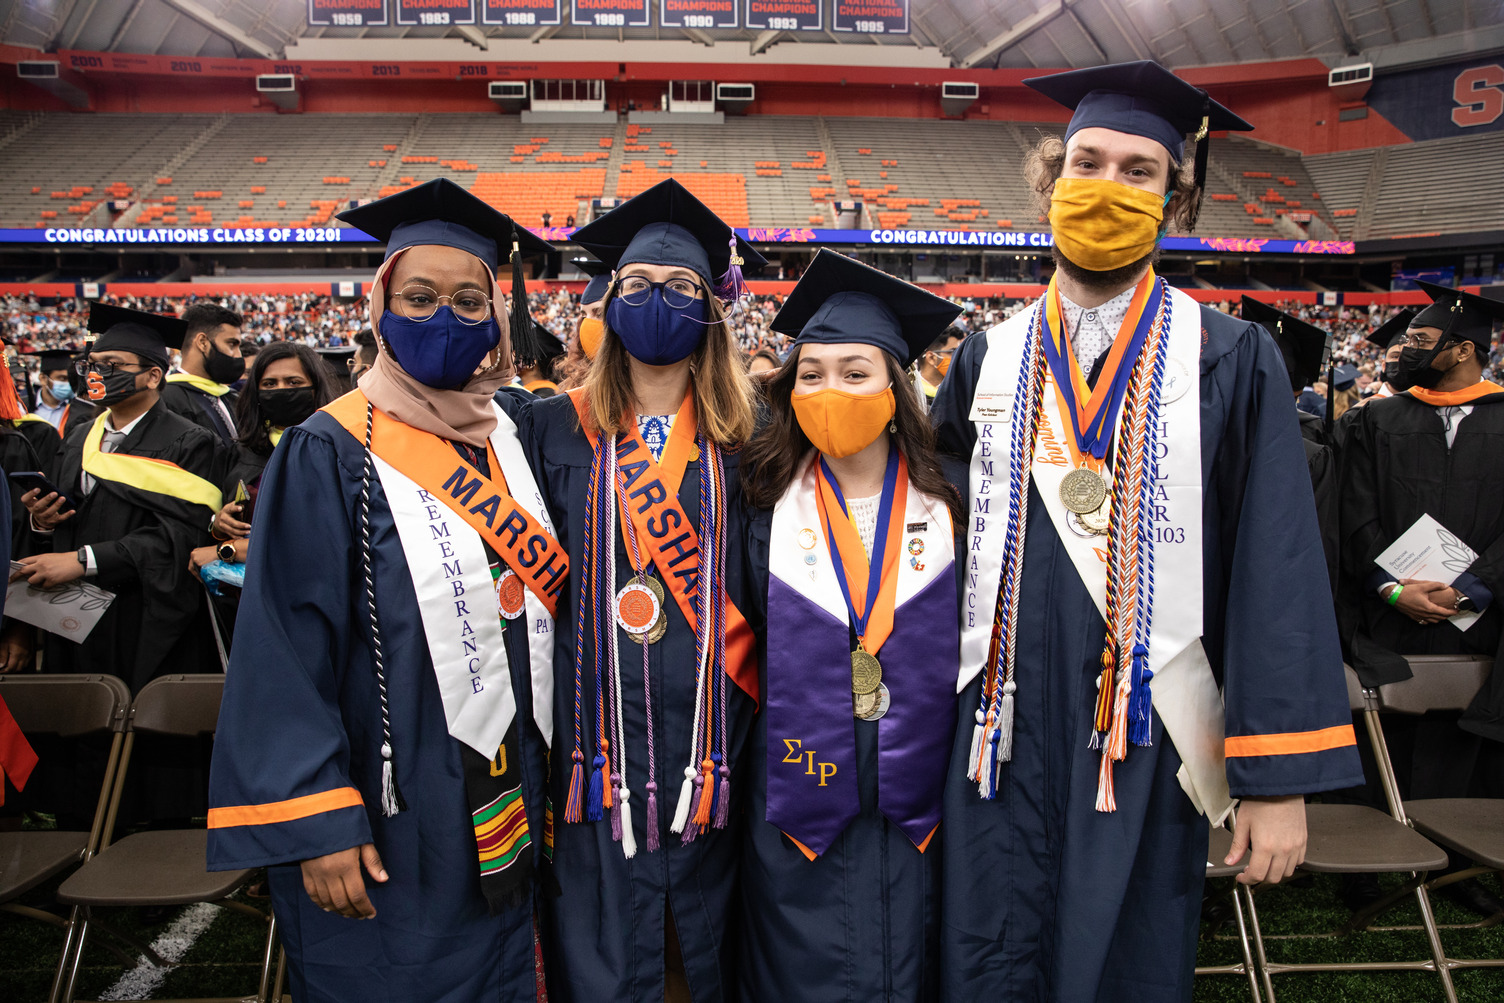 four people pose in caps, gowns and an assortment of regalia at Commencement 2020, held Sept. 19, 2021 in the stadium